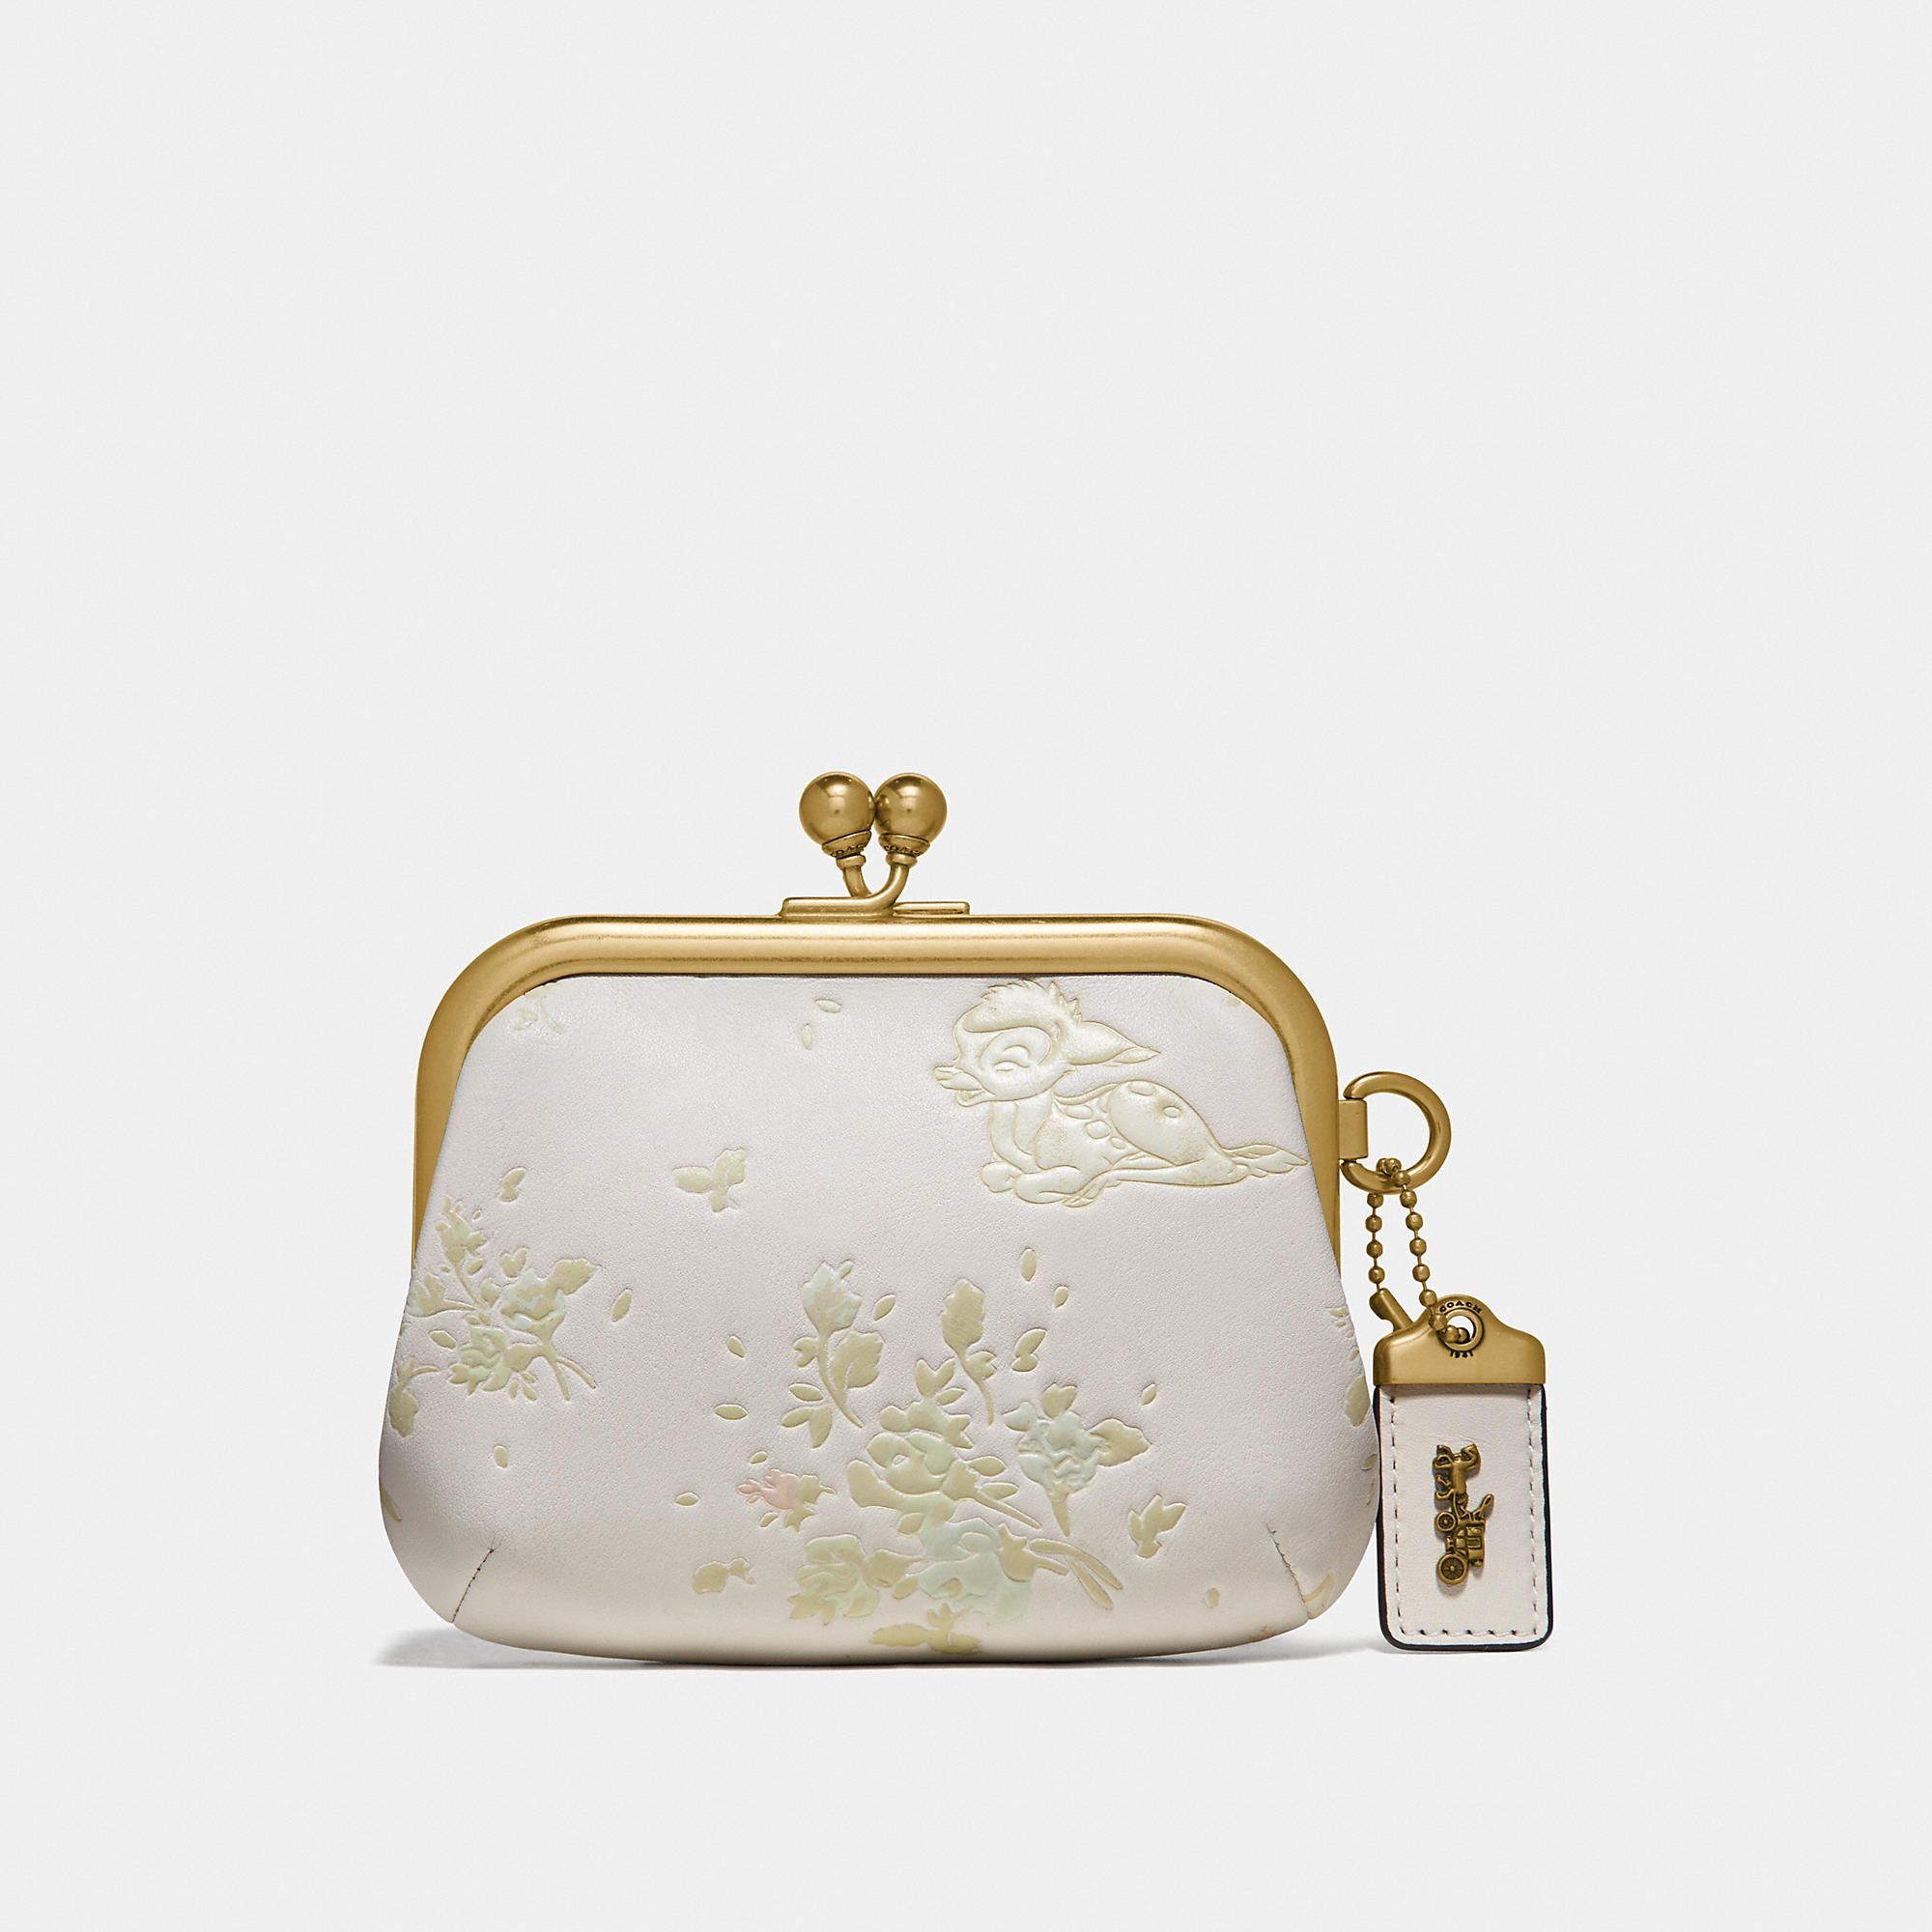 Floral Coin Purse Complete Kits with Kiss Lock Frame for Making Your Own Bag